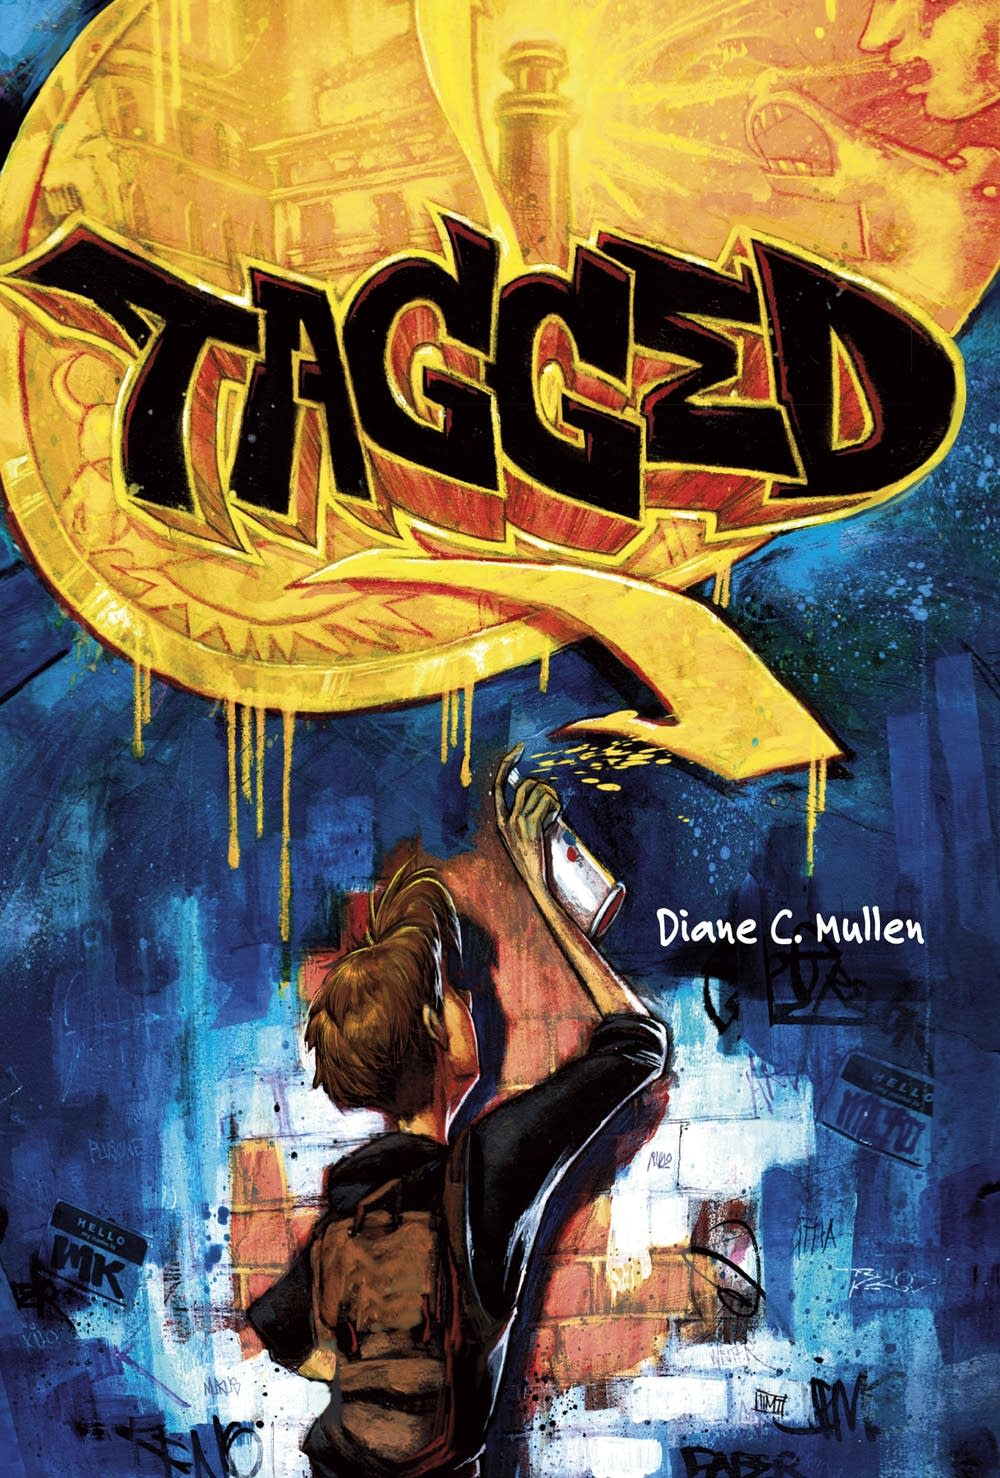 'Tagged' by Diane Mullen